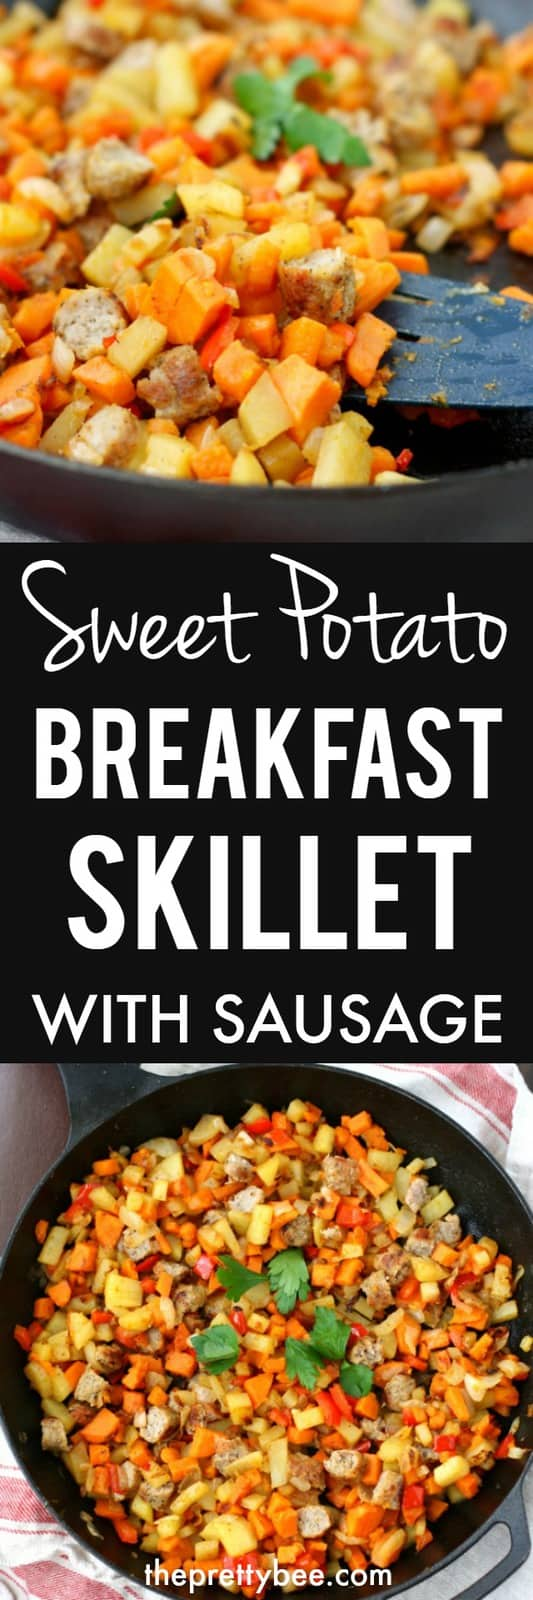 Delicious and hearty, this sweet potato breakfast skillet with sausage is the perfect way to start your day! #glutenfree #grainfree #eggfree